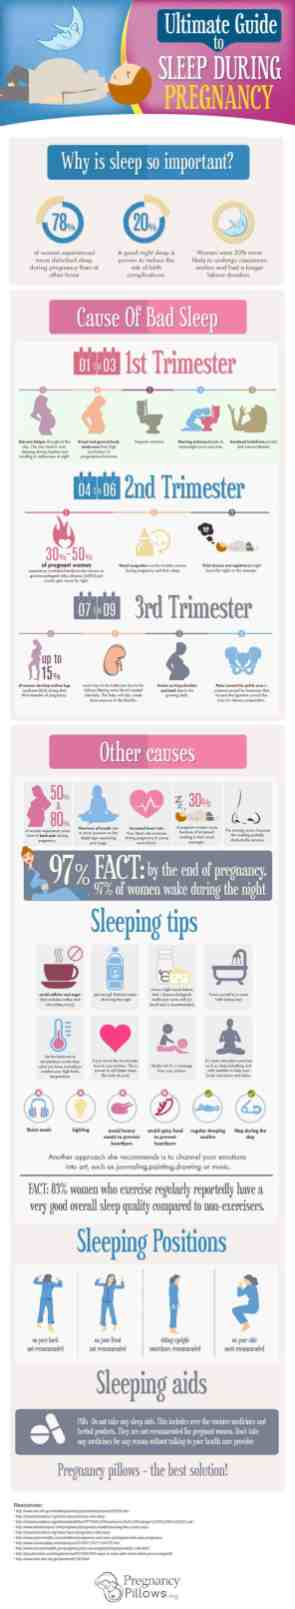 Best Infographic About Pregnancy 30